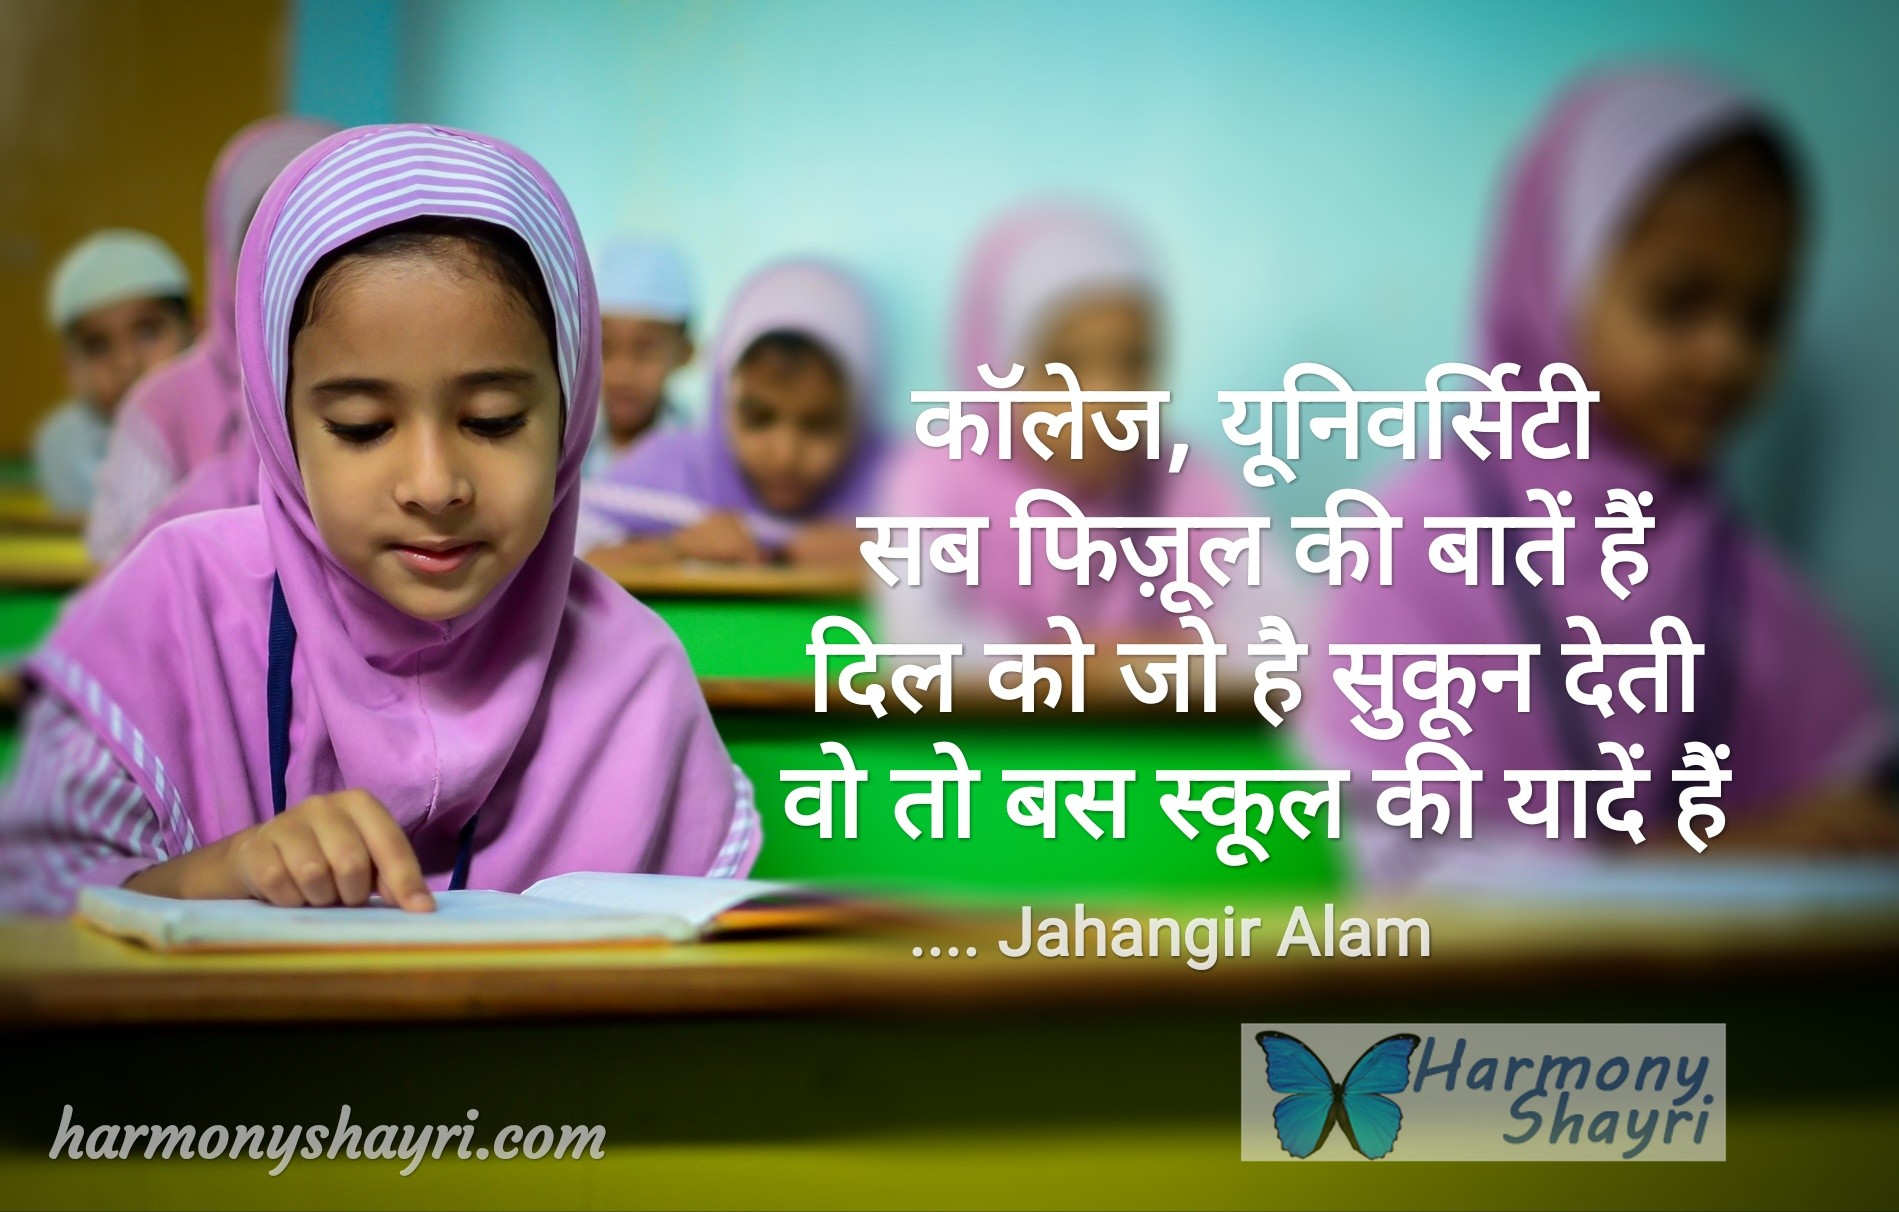 School ki yaadein - Jahangir Alam - Top Hindi Shayari Collection